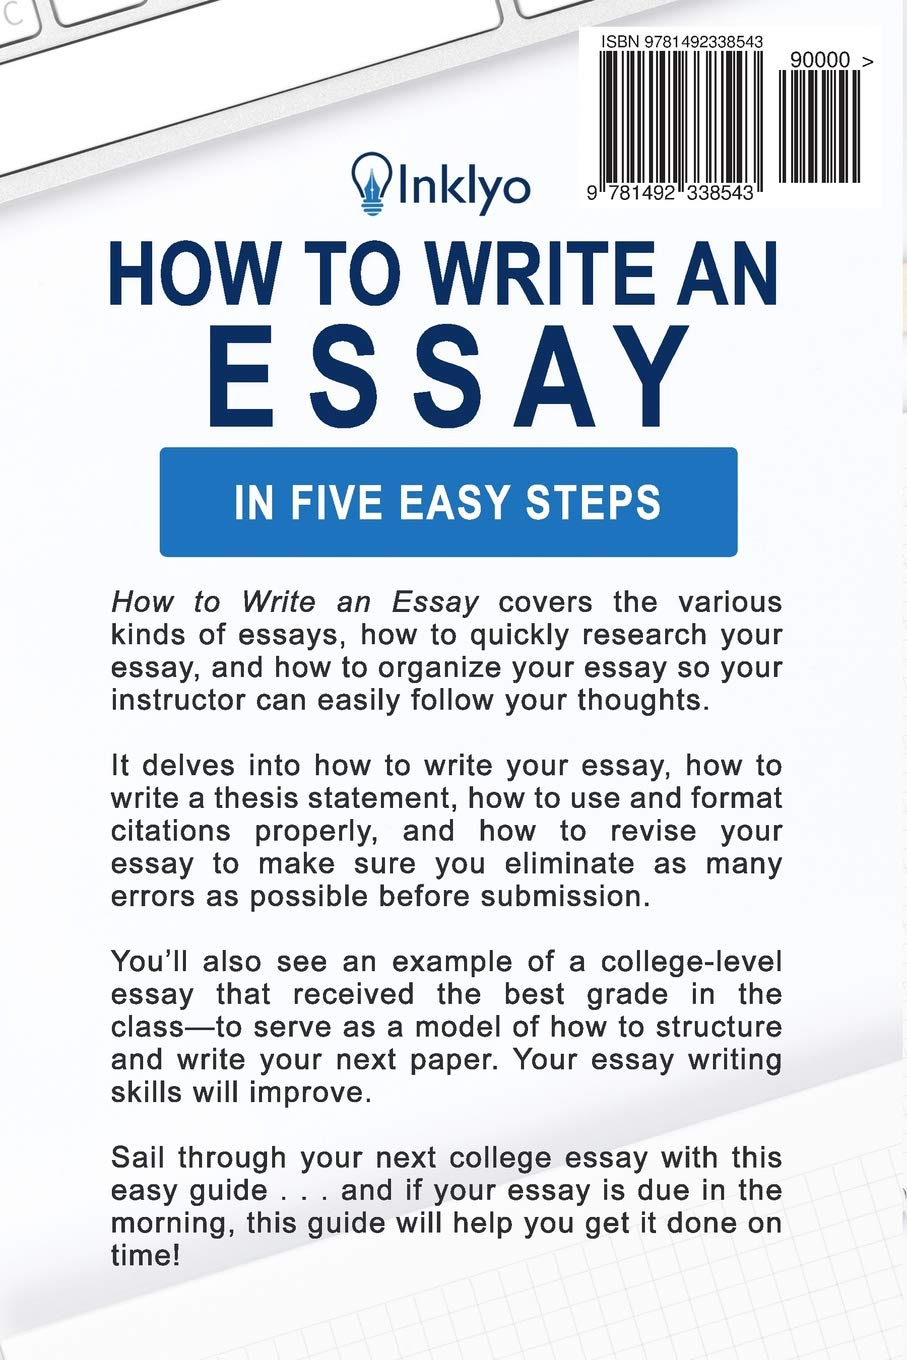 008 Essay Example 71v7ckw5pll Writing Best An Written Essays In Apa Format For College Application Academic Introduction Full